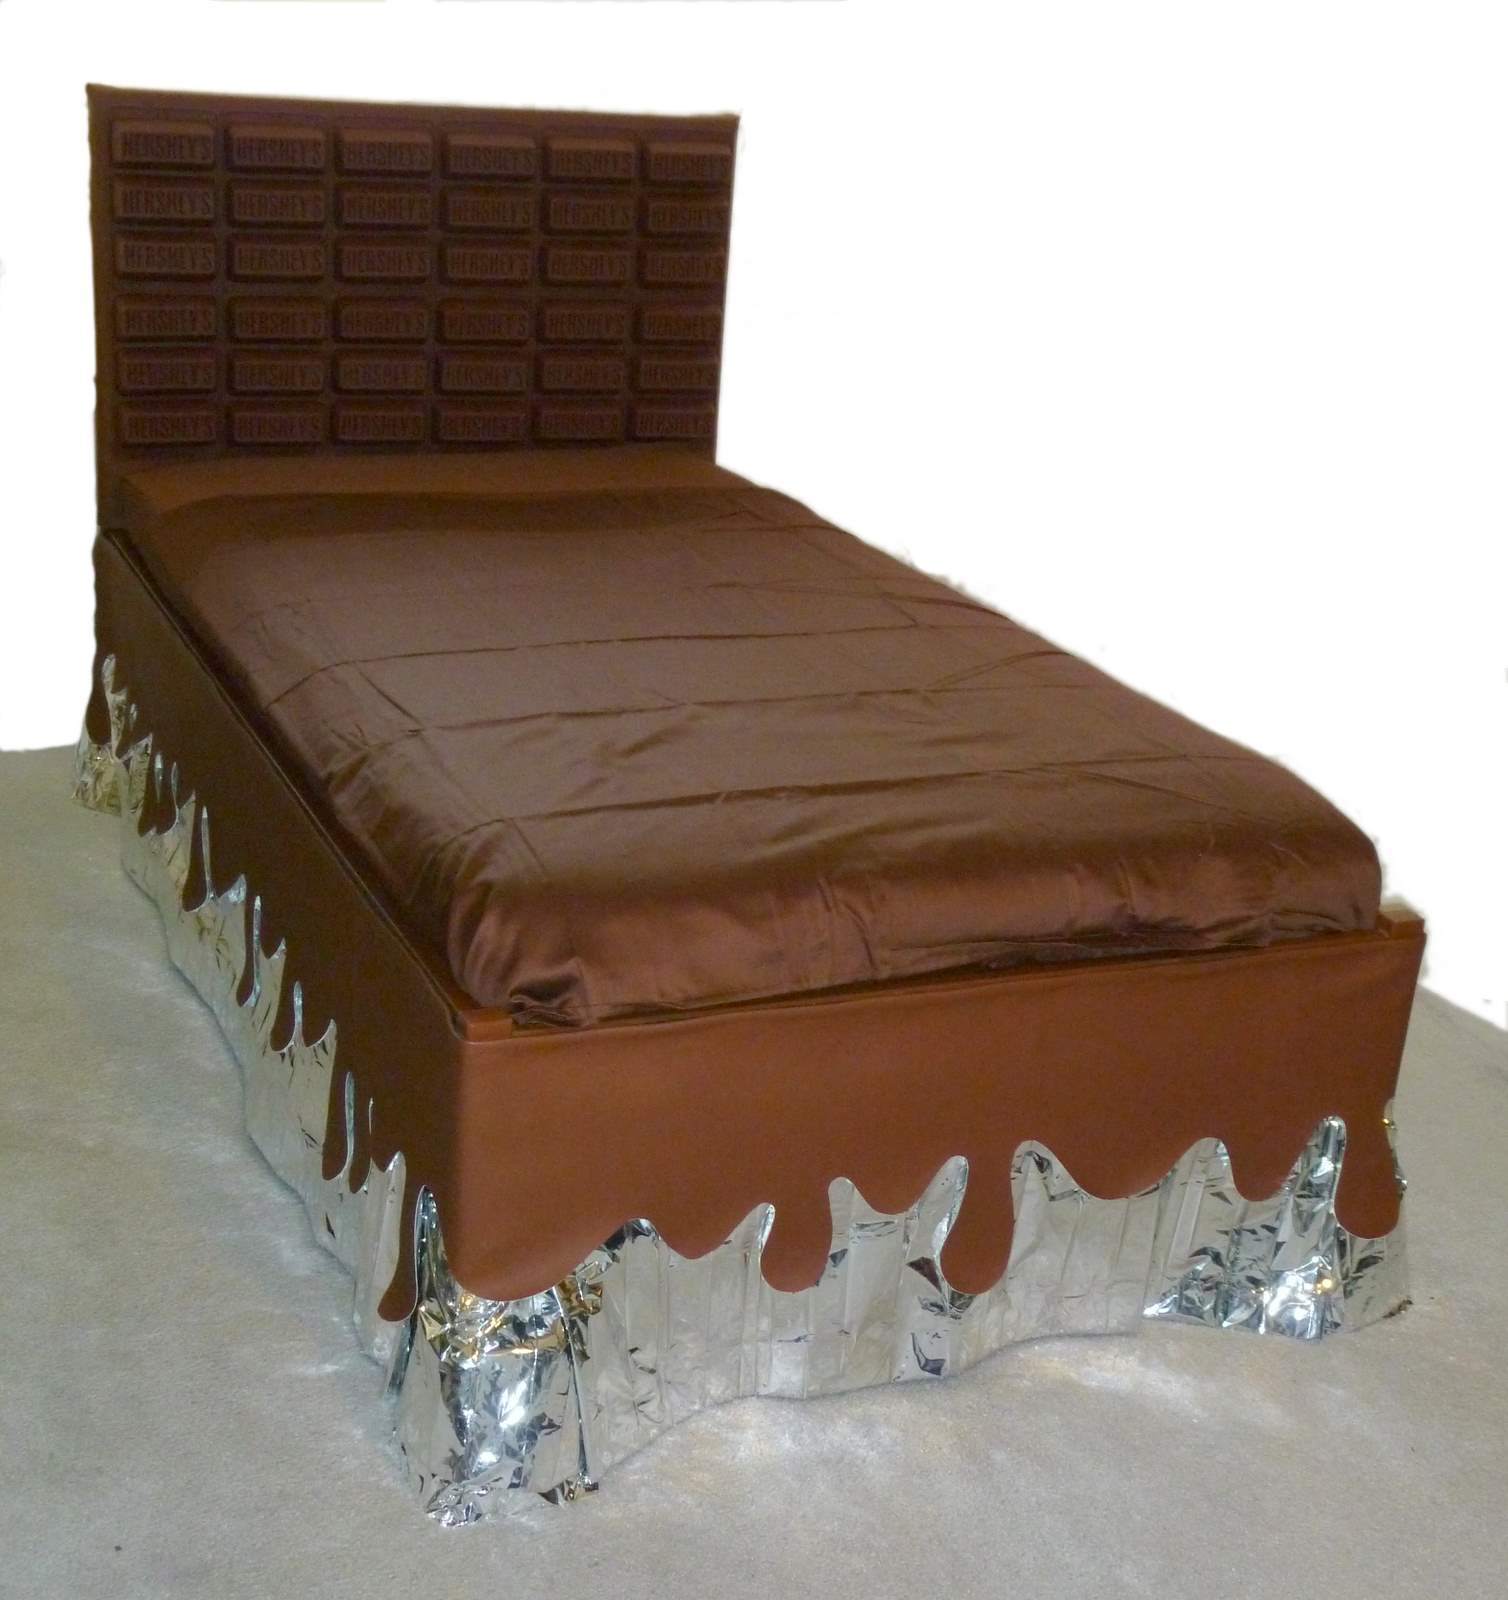 Great Materials Ikea Fjellse twin size bed Ikea bed risers Hershey us muffin pans space blanket brown vinyl